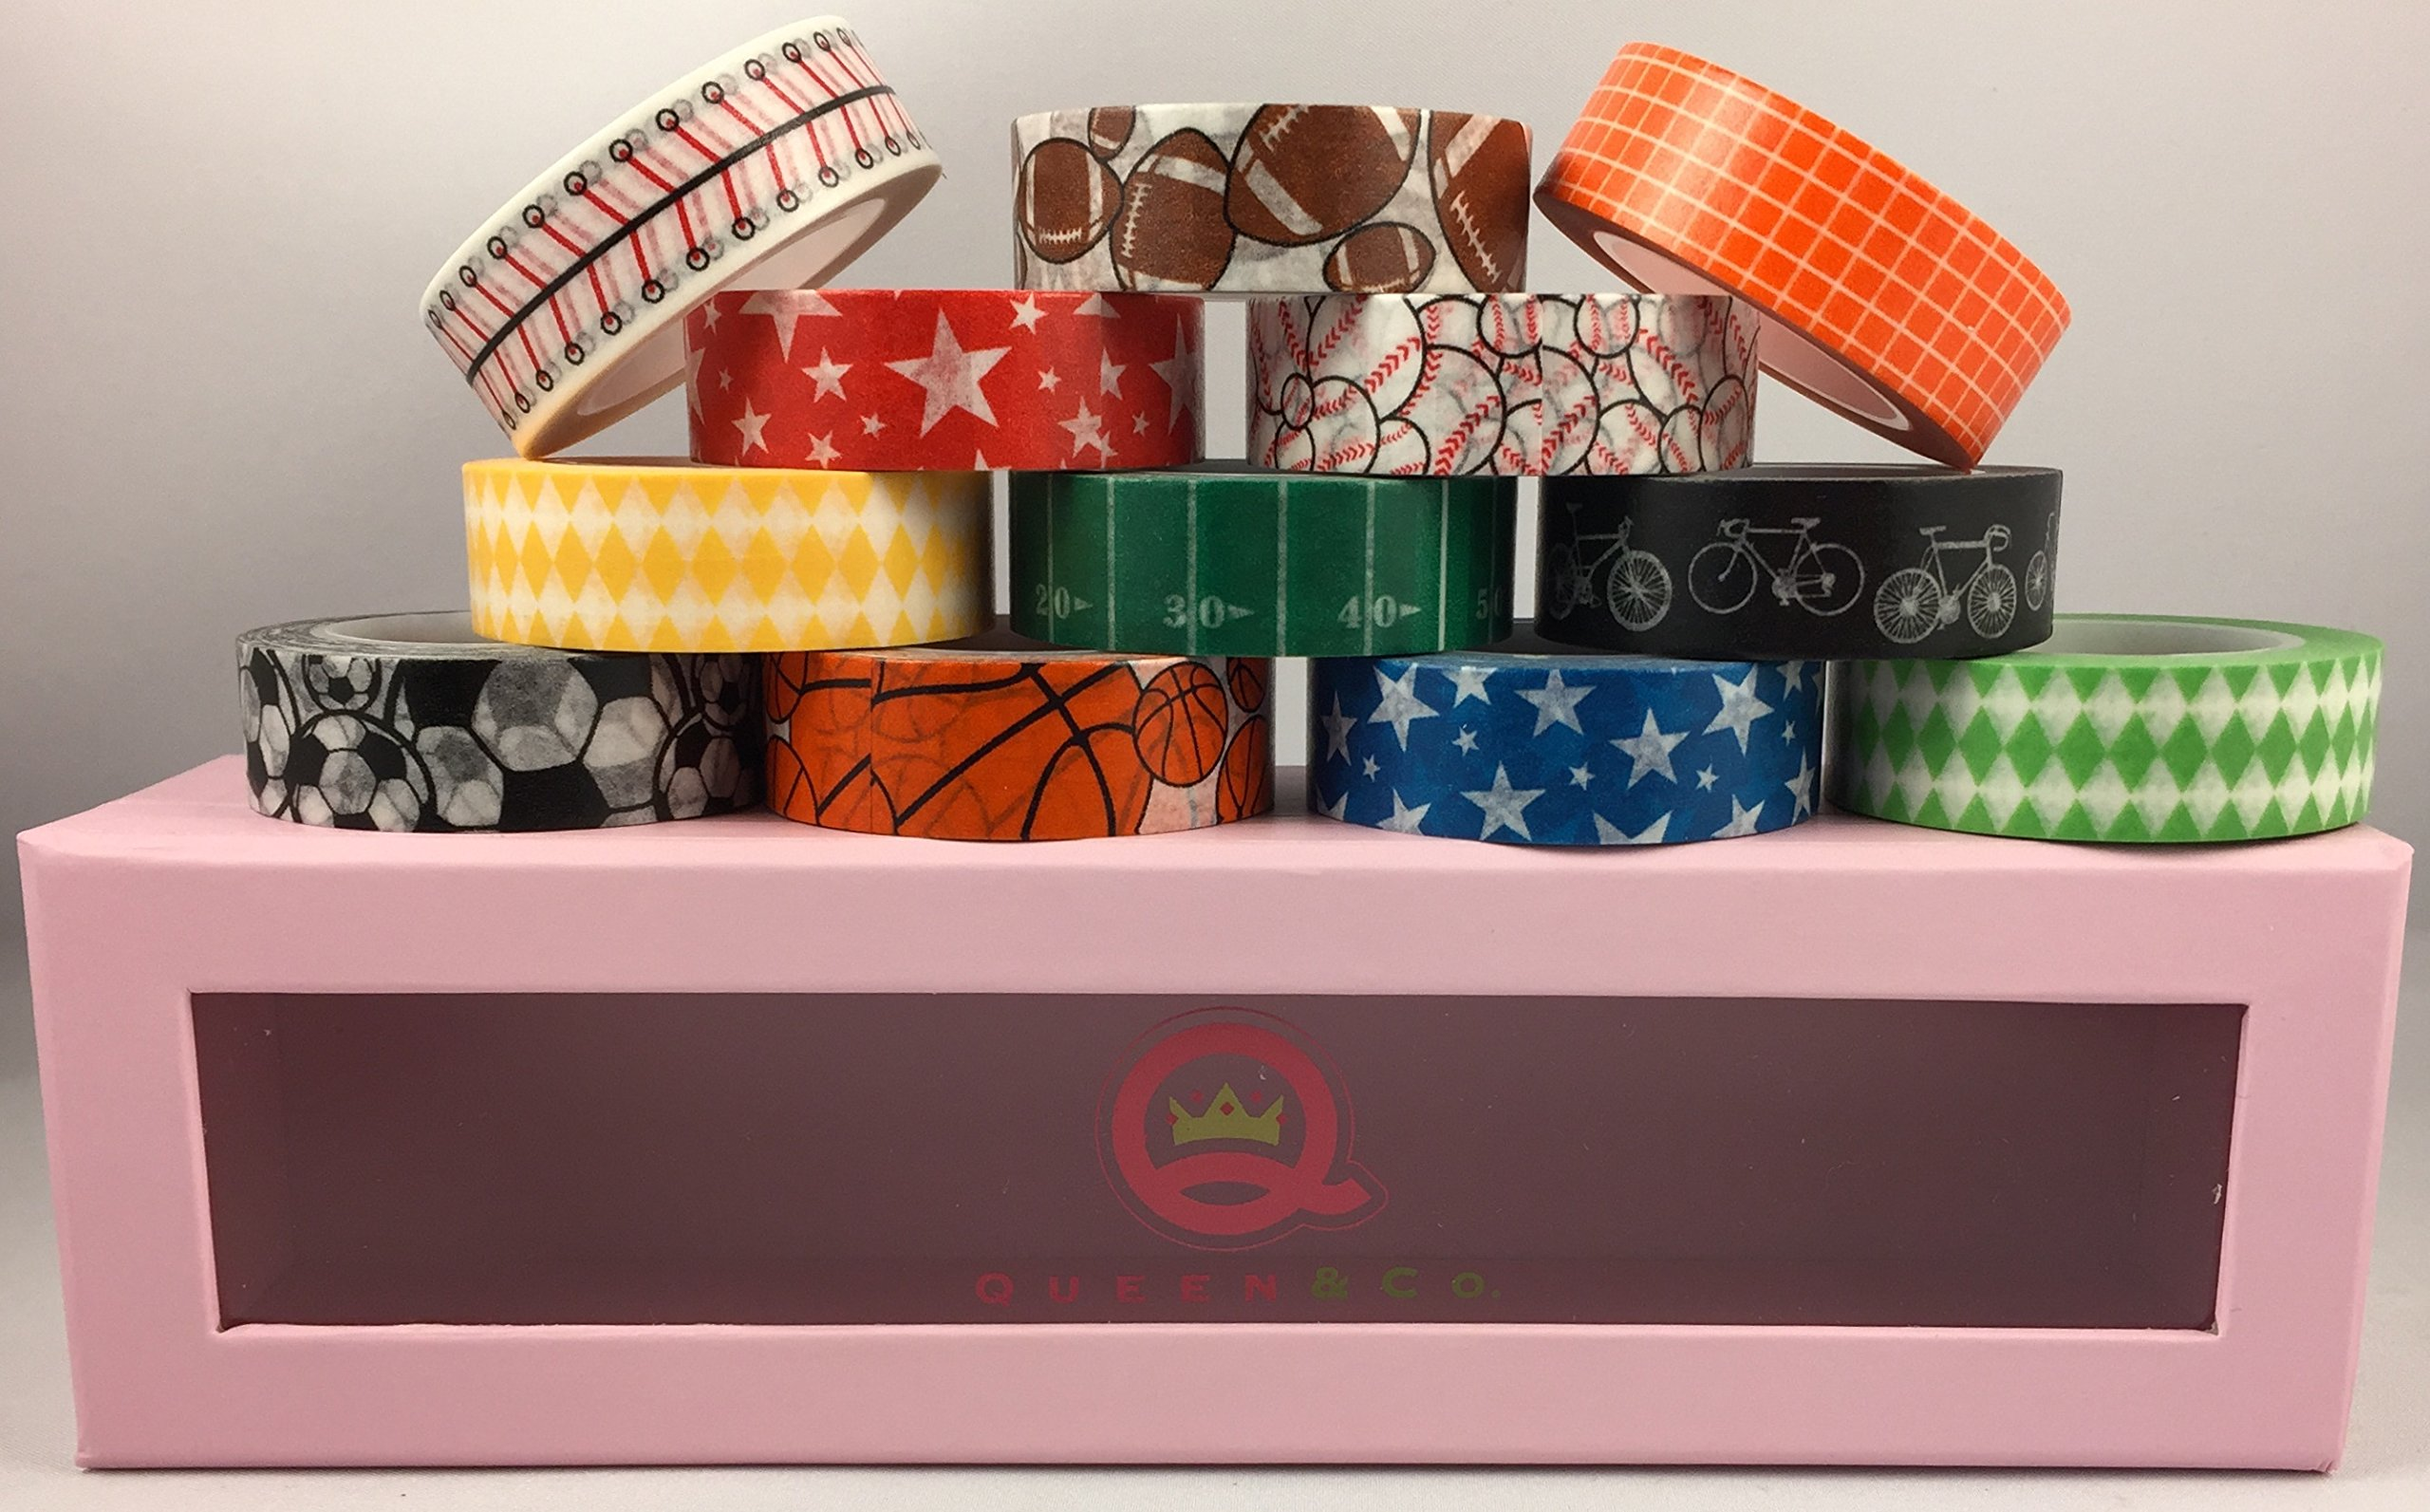 Washi Trendy Tape - Sports Self-adhesive Removeable Paper Tape - Bundle of 12 Rolls, Each 1/2'' X 10 Yards in a Cute Limited Edition Pink Polkadot Storage Box, By Queen & Co. by Queen